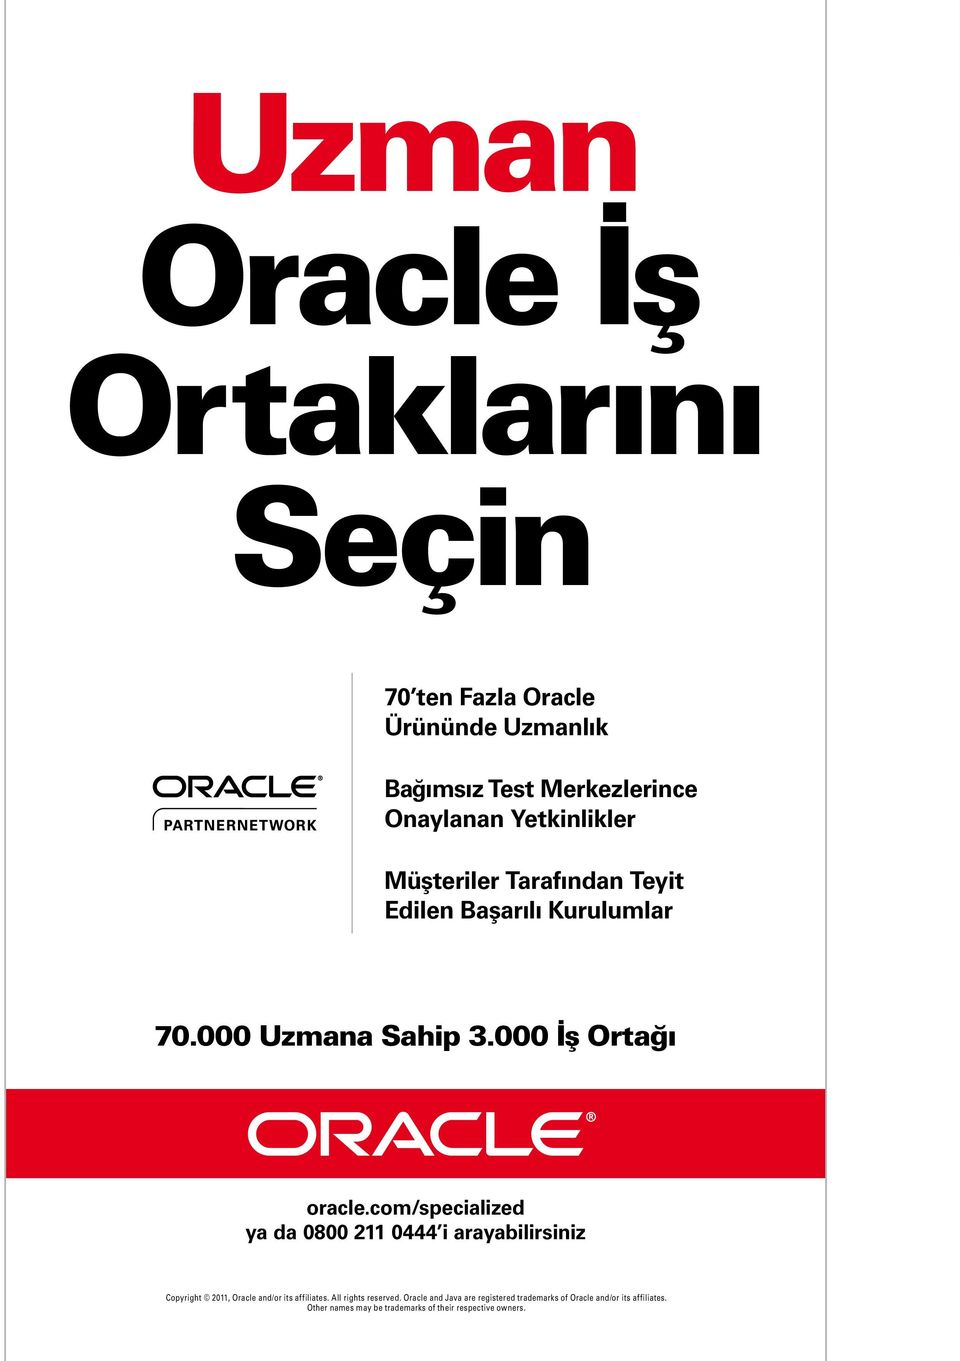 com/specialized ya da 0800 211 0444 i arayabilirsiniz Copyright 2011, Oracle and/or its affiliates. All rights reserved.